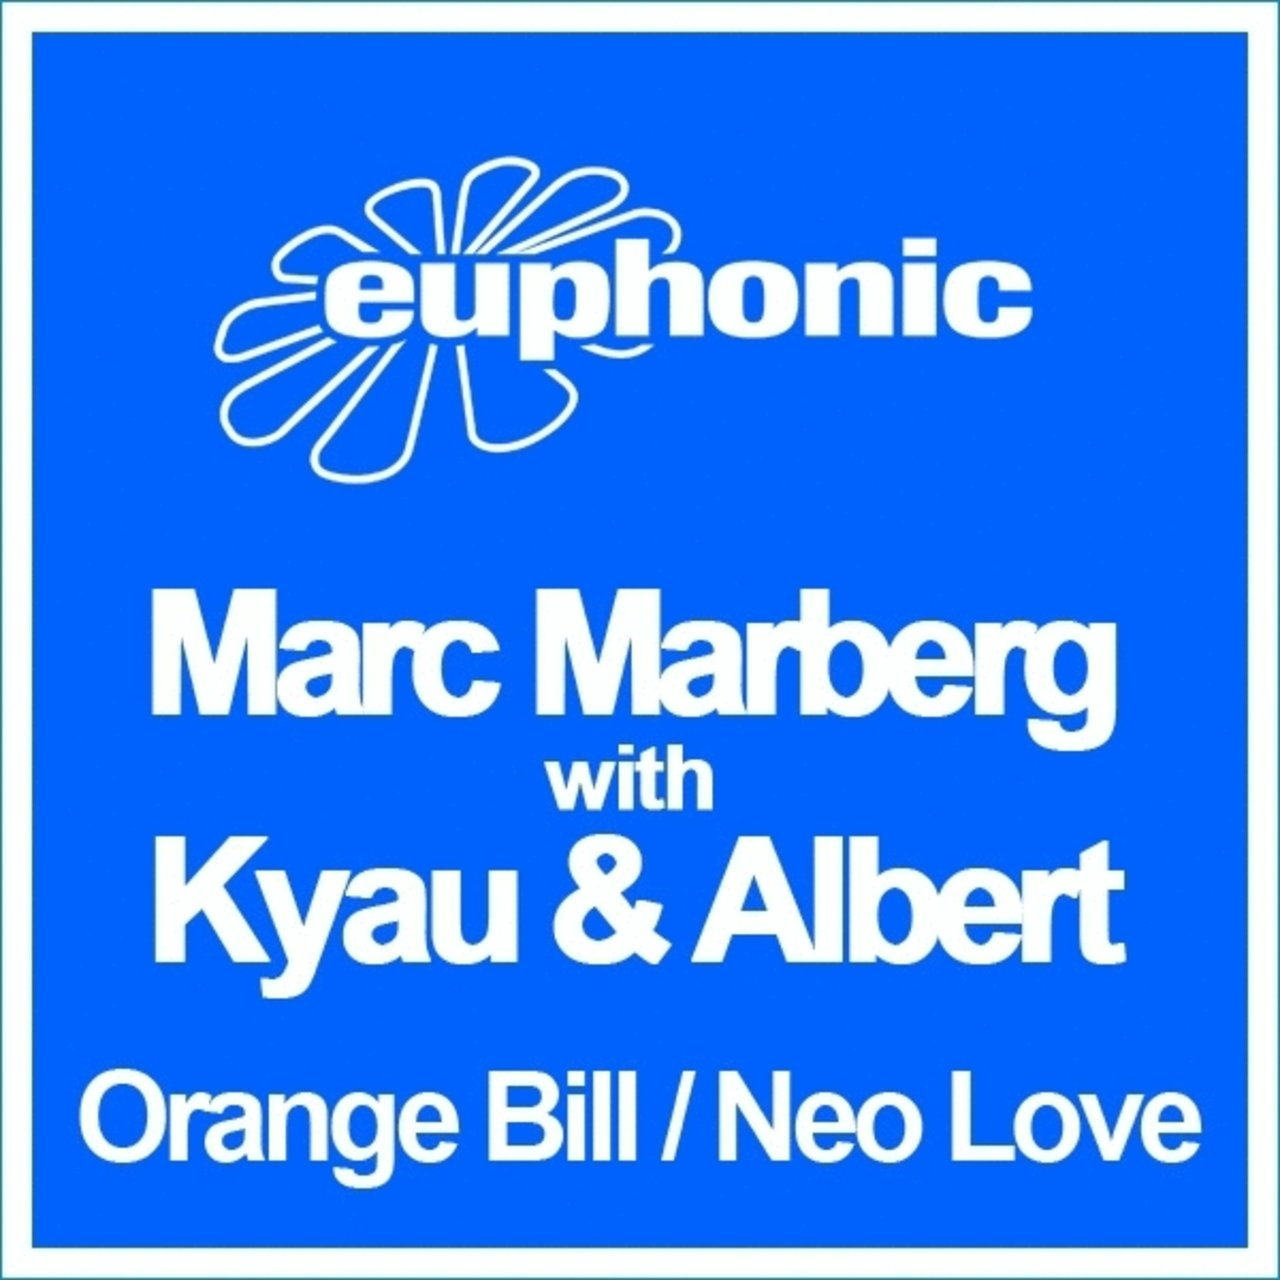 Orange Bill / Neo Love